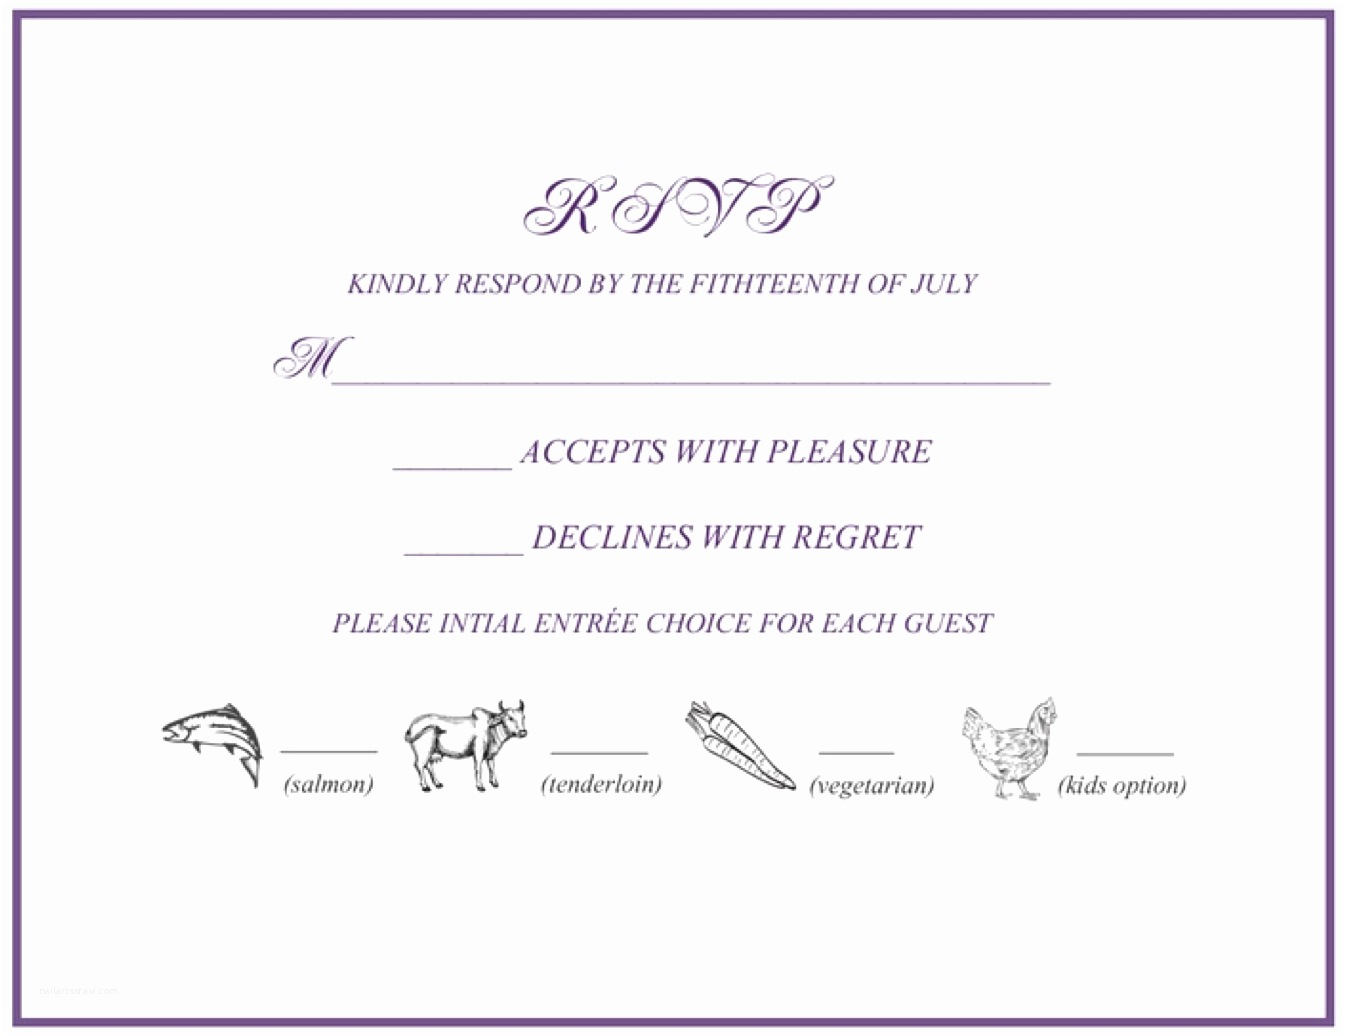 How to Rsvp for Wedding Invitation Rsvp 101 How to Rsvp to A Wedding or event Rsvpify